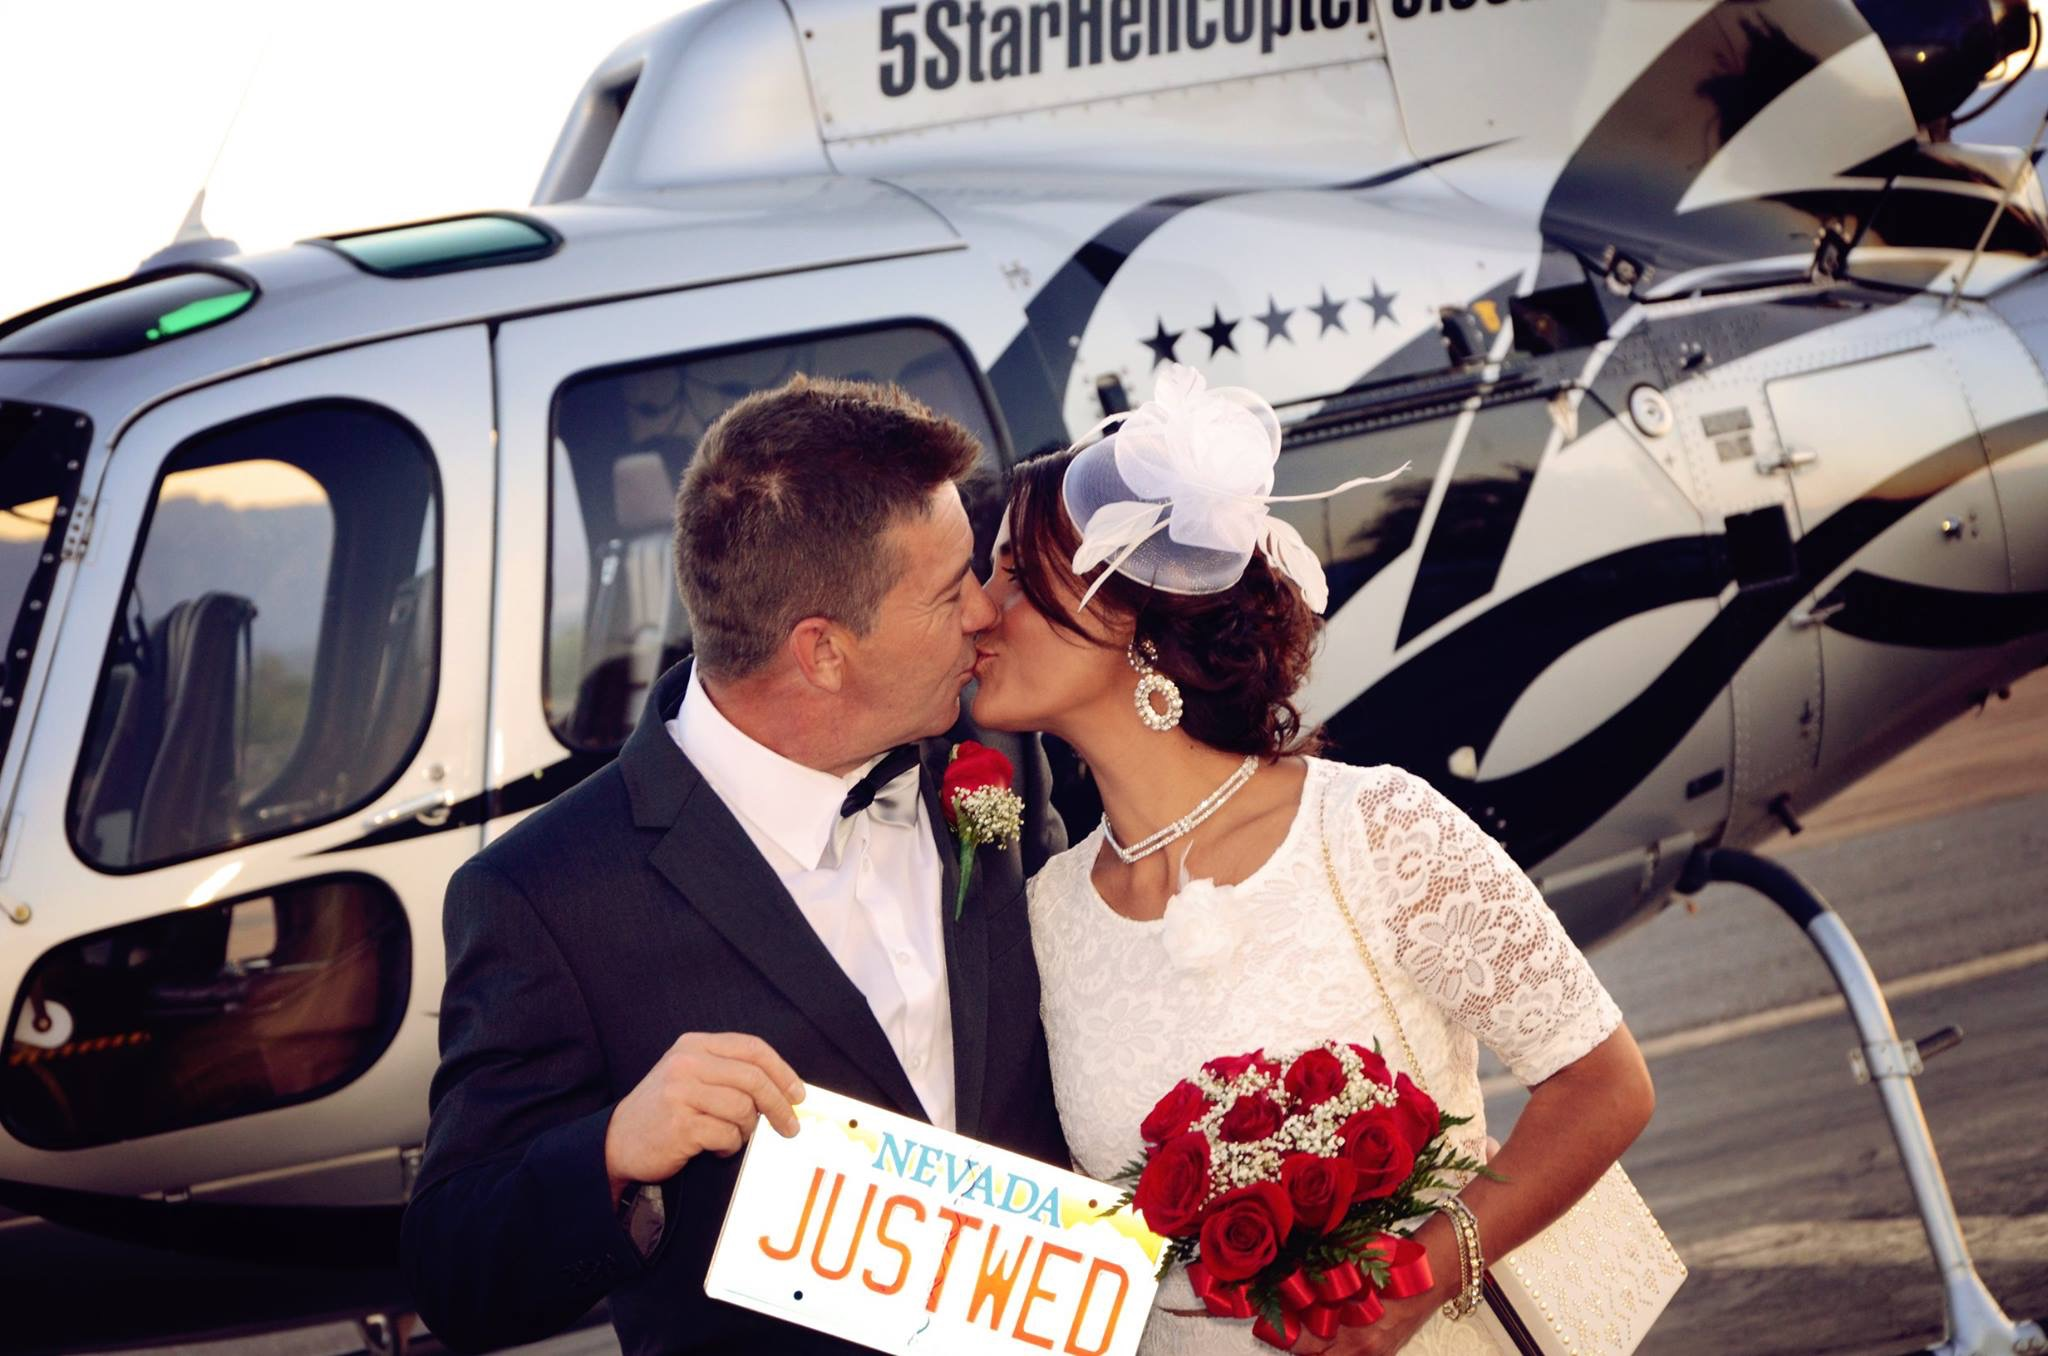 Just married im Helikopter über Las Vegas